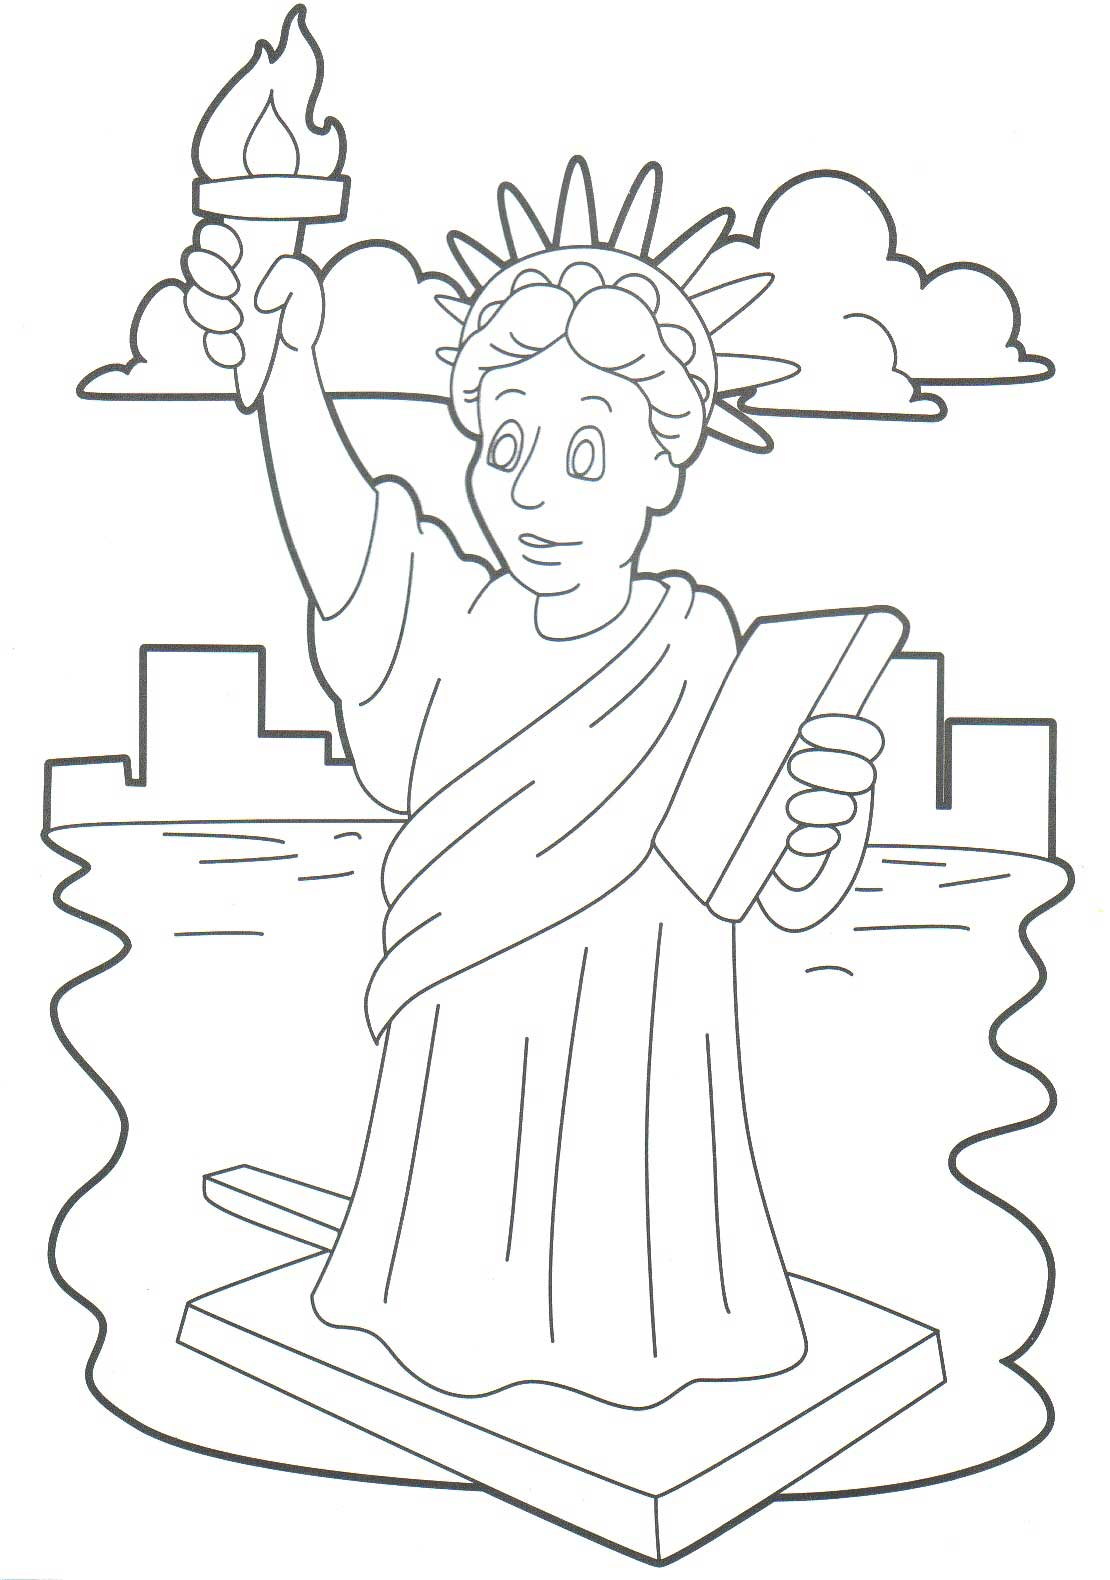 Stonehenge Coloring Page At Getcolorings